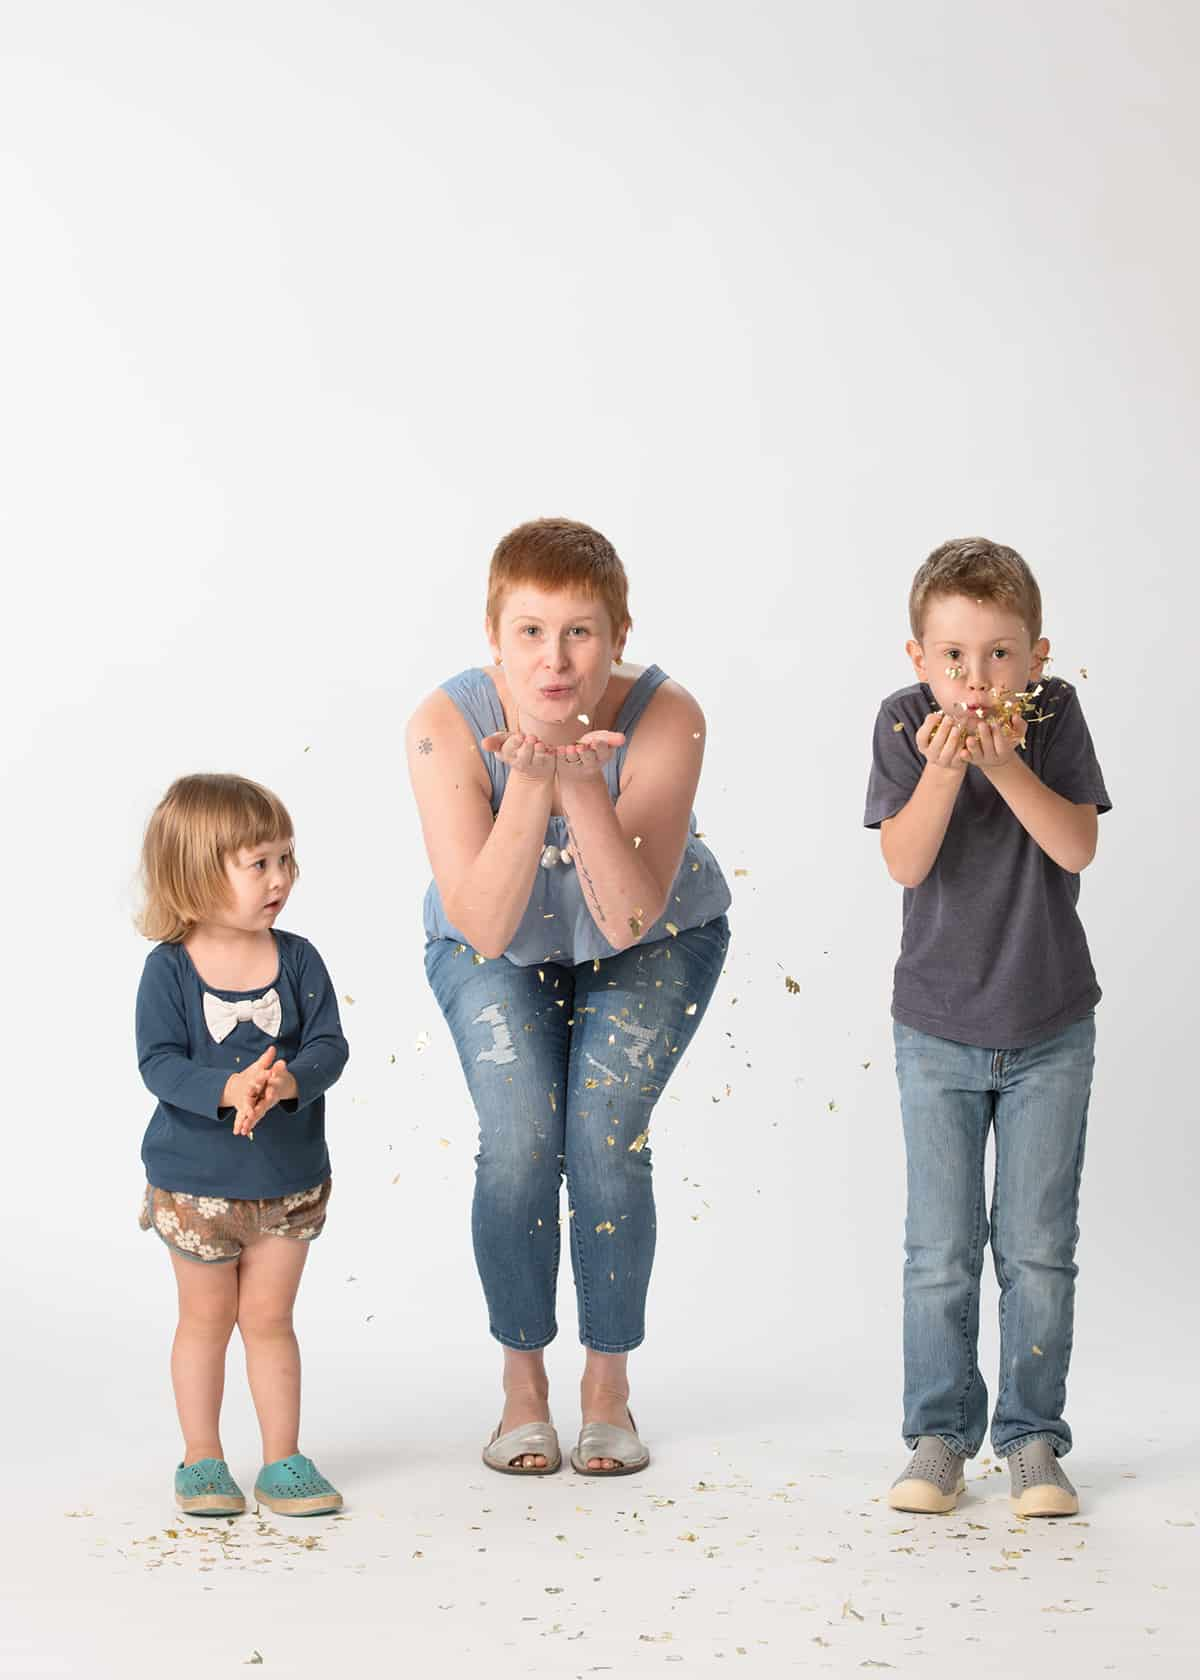 Fun Family photoshoot with glitter